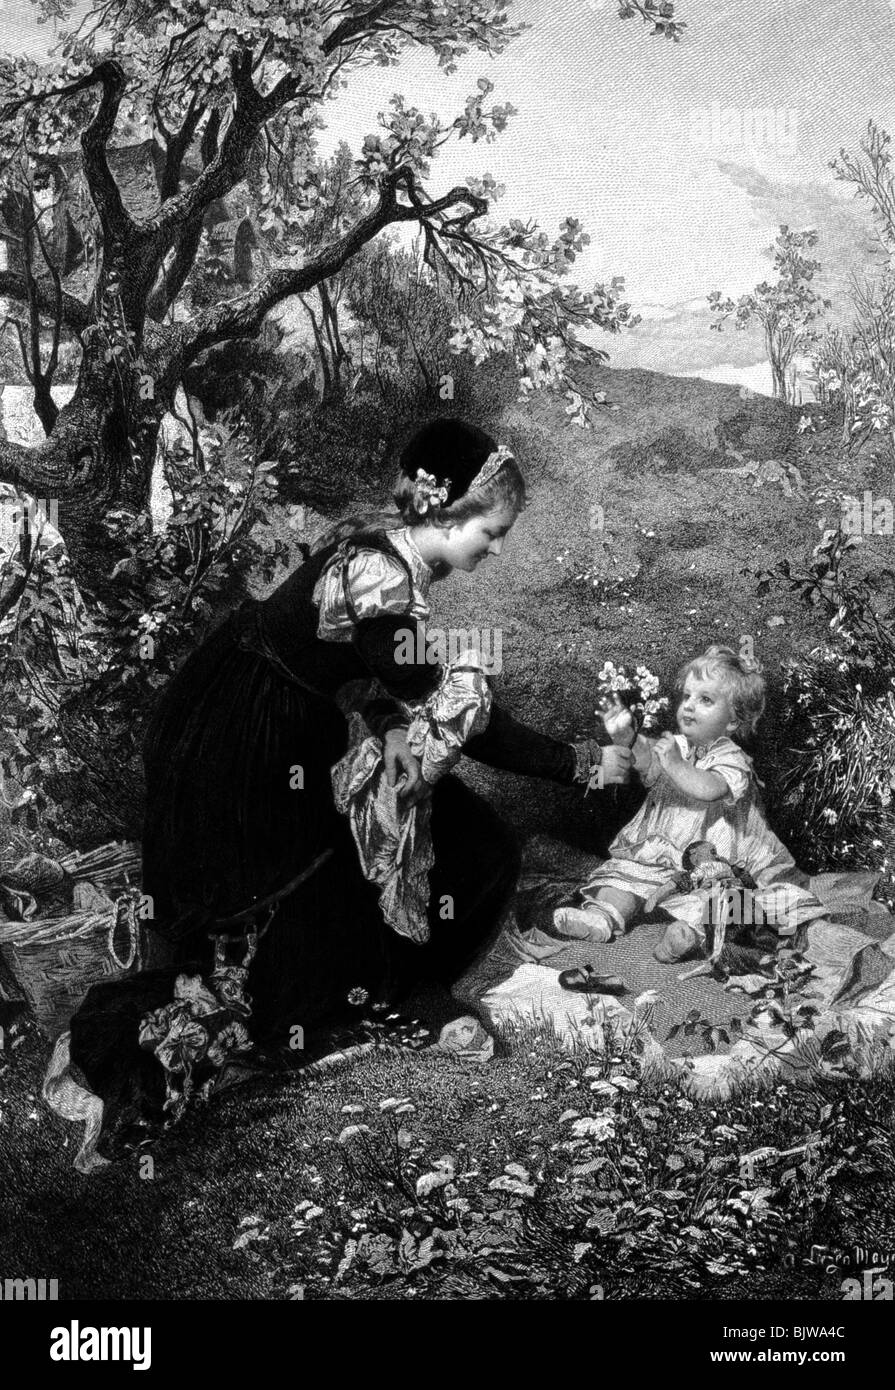 """literature, """"Faust I"""", 12th scene """"Garden"""", Gretchen and sister, wood engraving by Alexander Liezen Mayer, circa Stock Photo"""